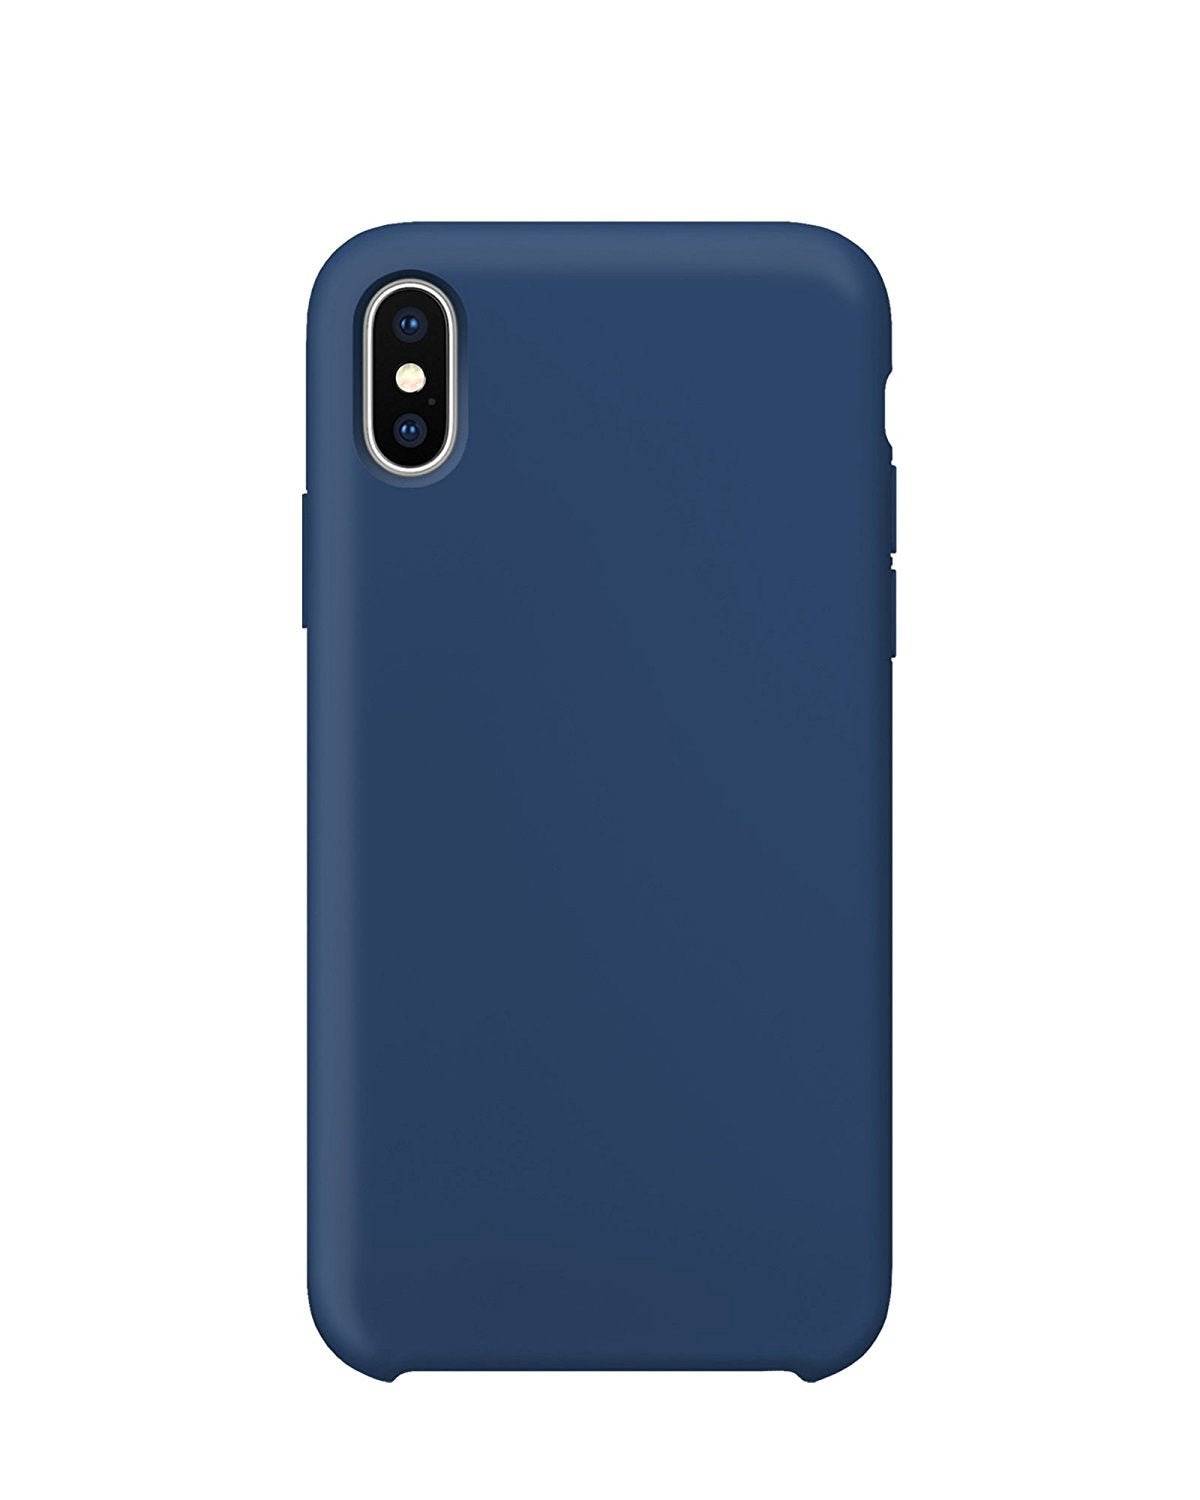 Arrive Liquid Silicone Case For iPhone X, XS